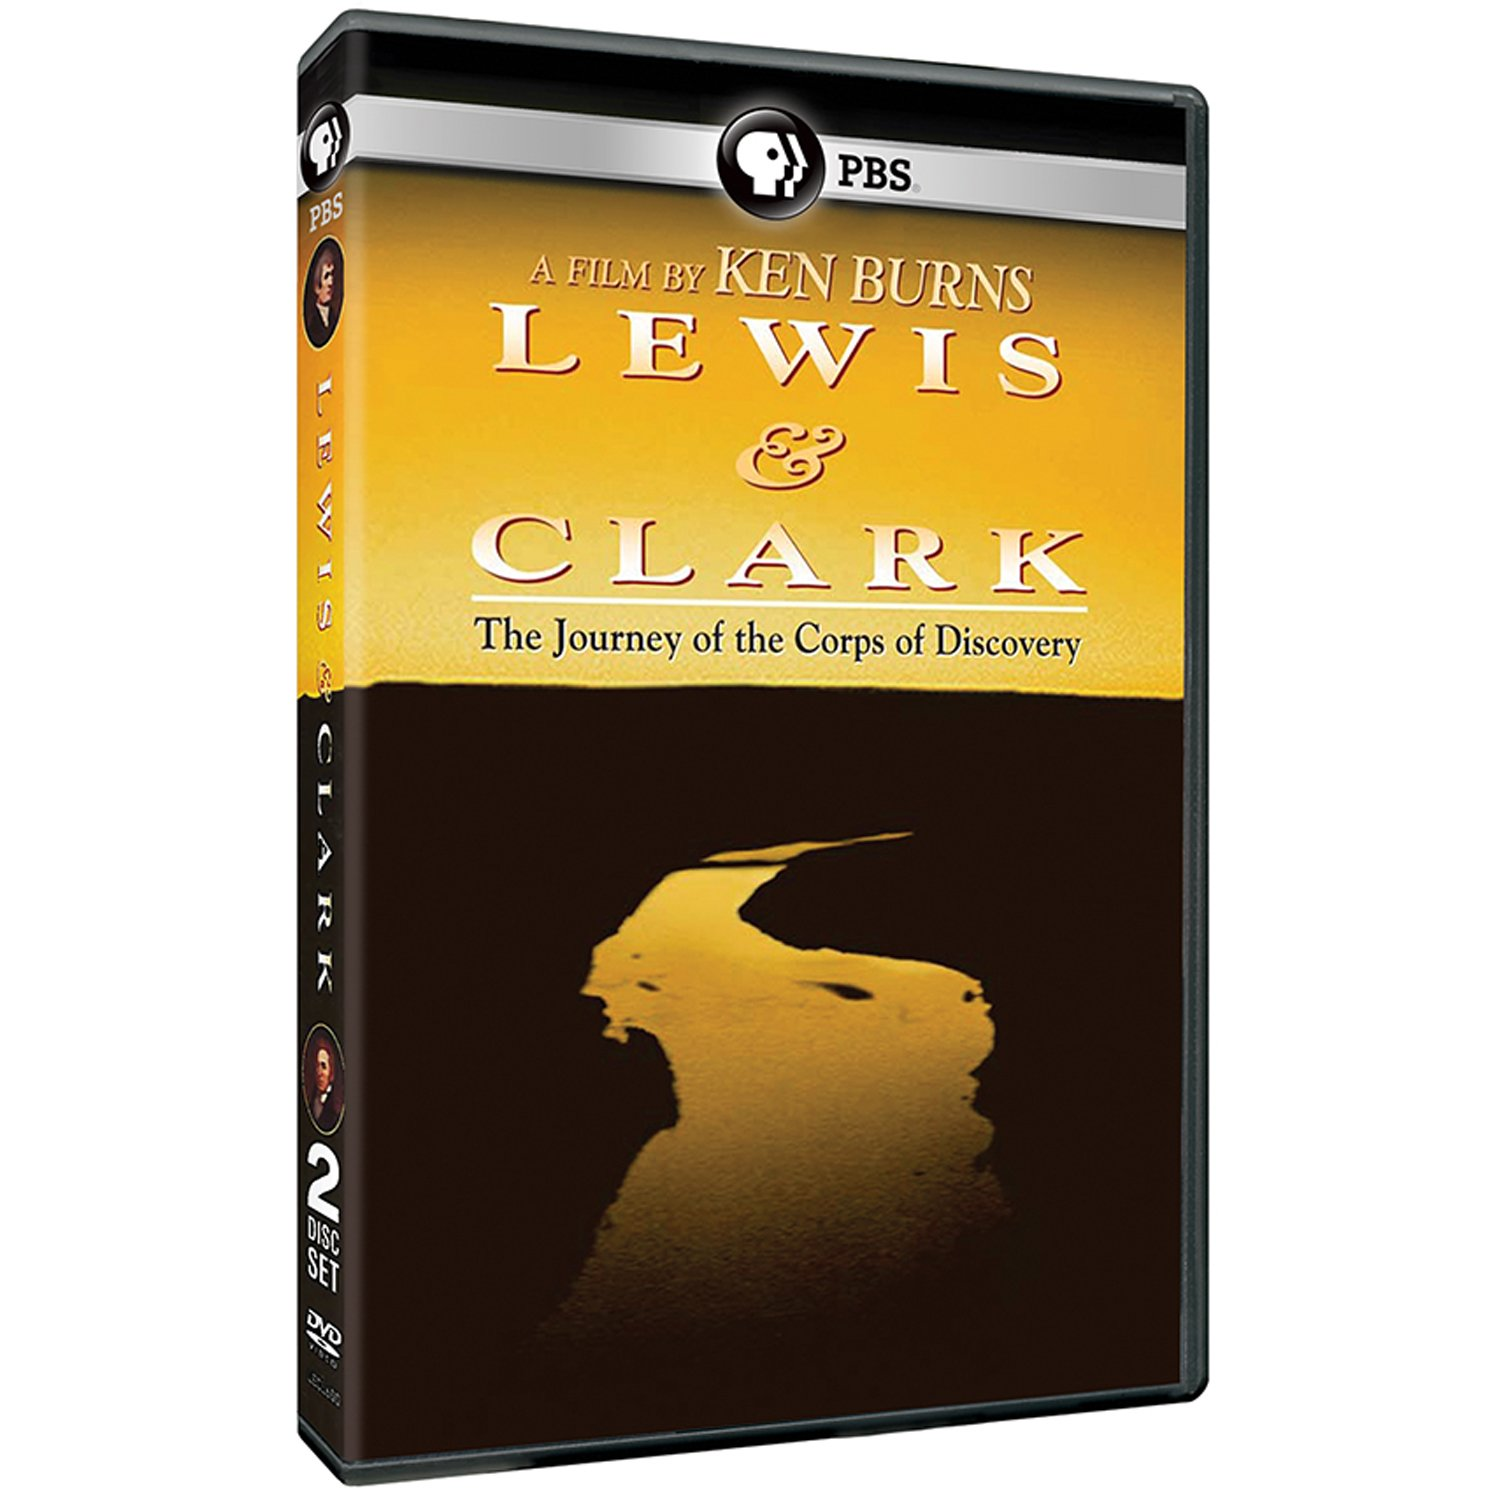 Lewis & Clark - The Journey of the Corps of Discovery